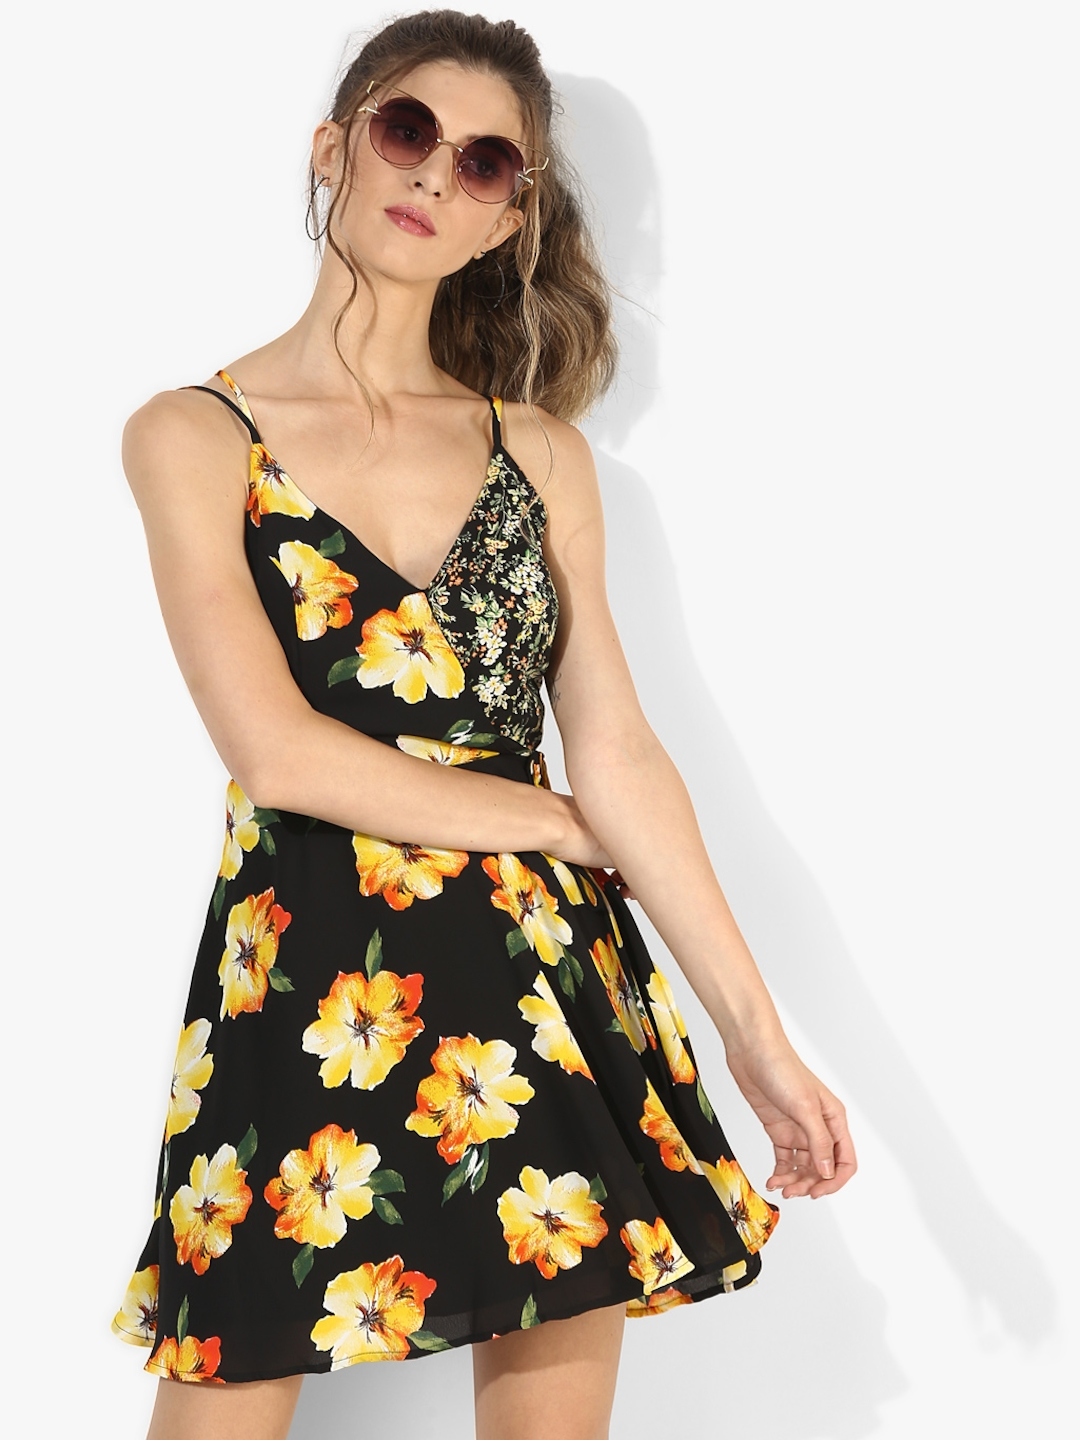 44729ef338e Buy FOREVER 21 Women Black Floral Printed Fit   Flare Dress ...